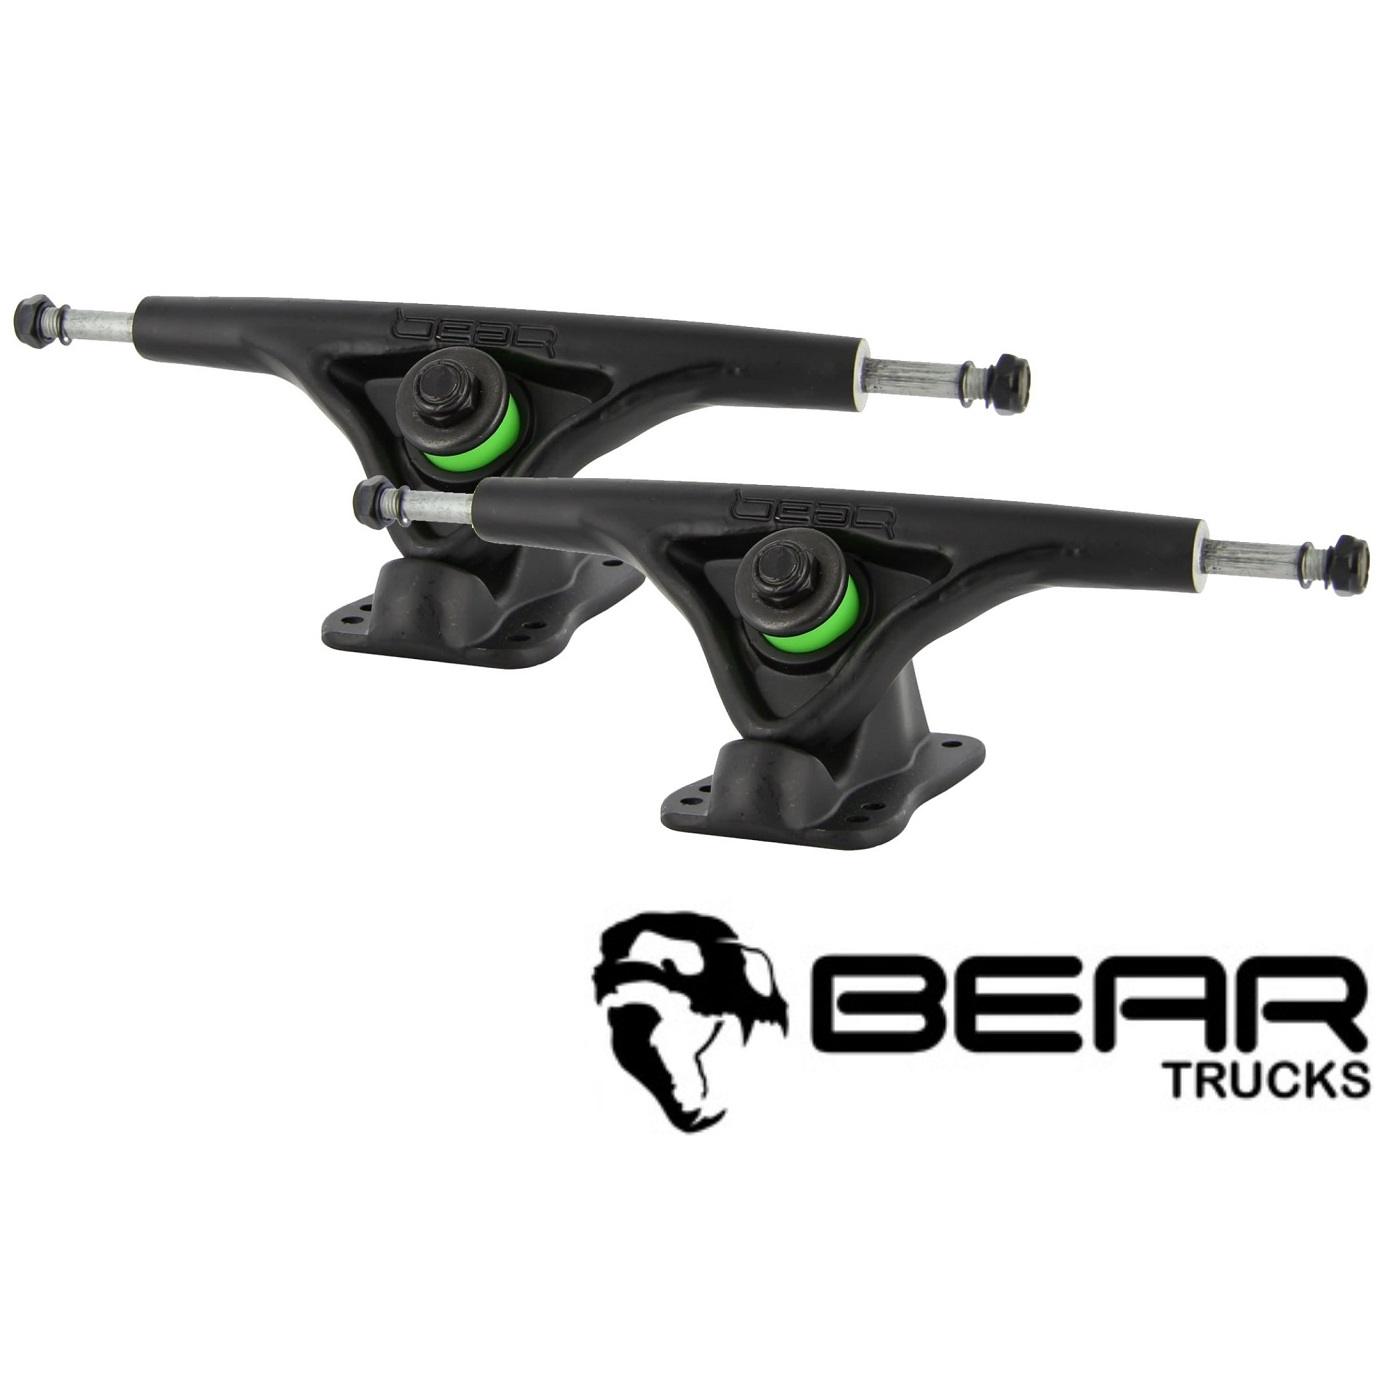 Bear Trucks Bear trucky Grizzly Gen 5 840 181mm 40° black 2ks